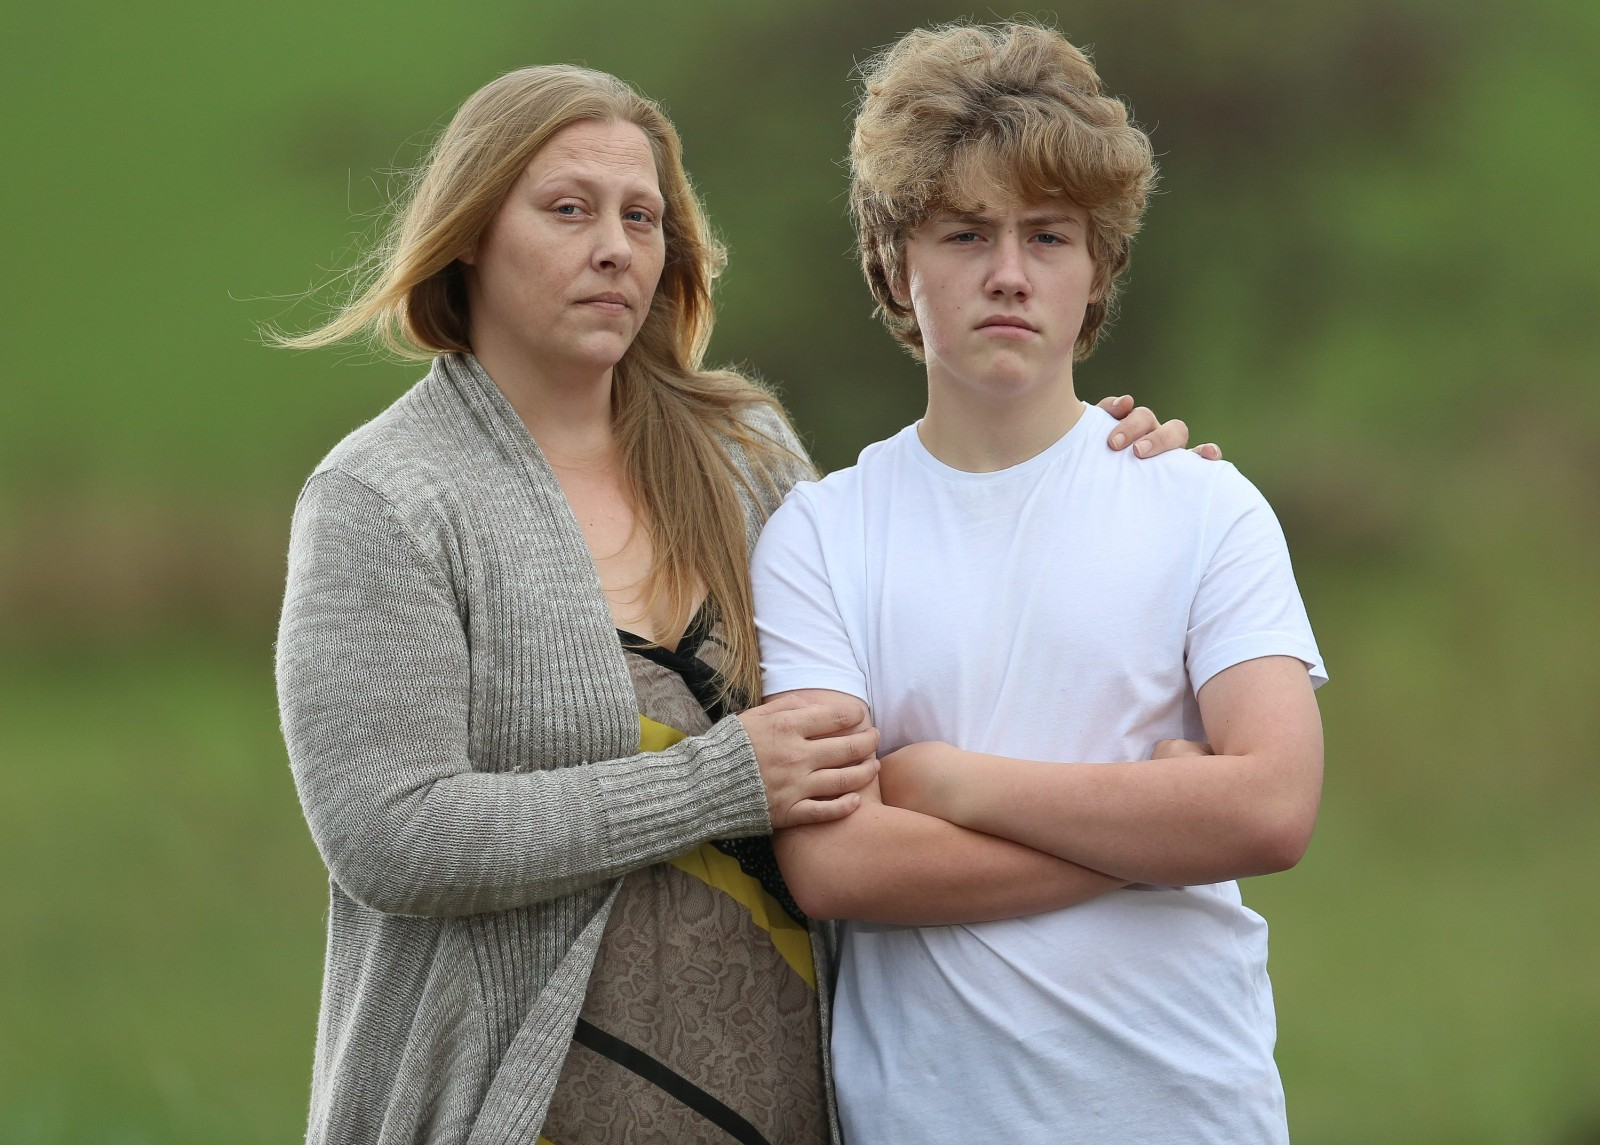 Mum's horror as video of her son's shocking attack appears on Facebook